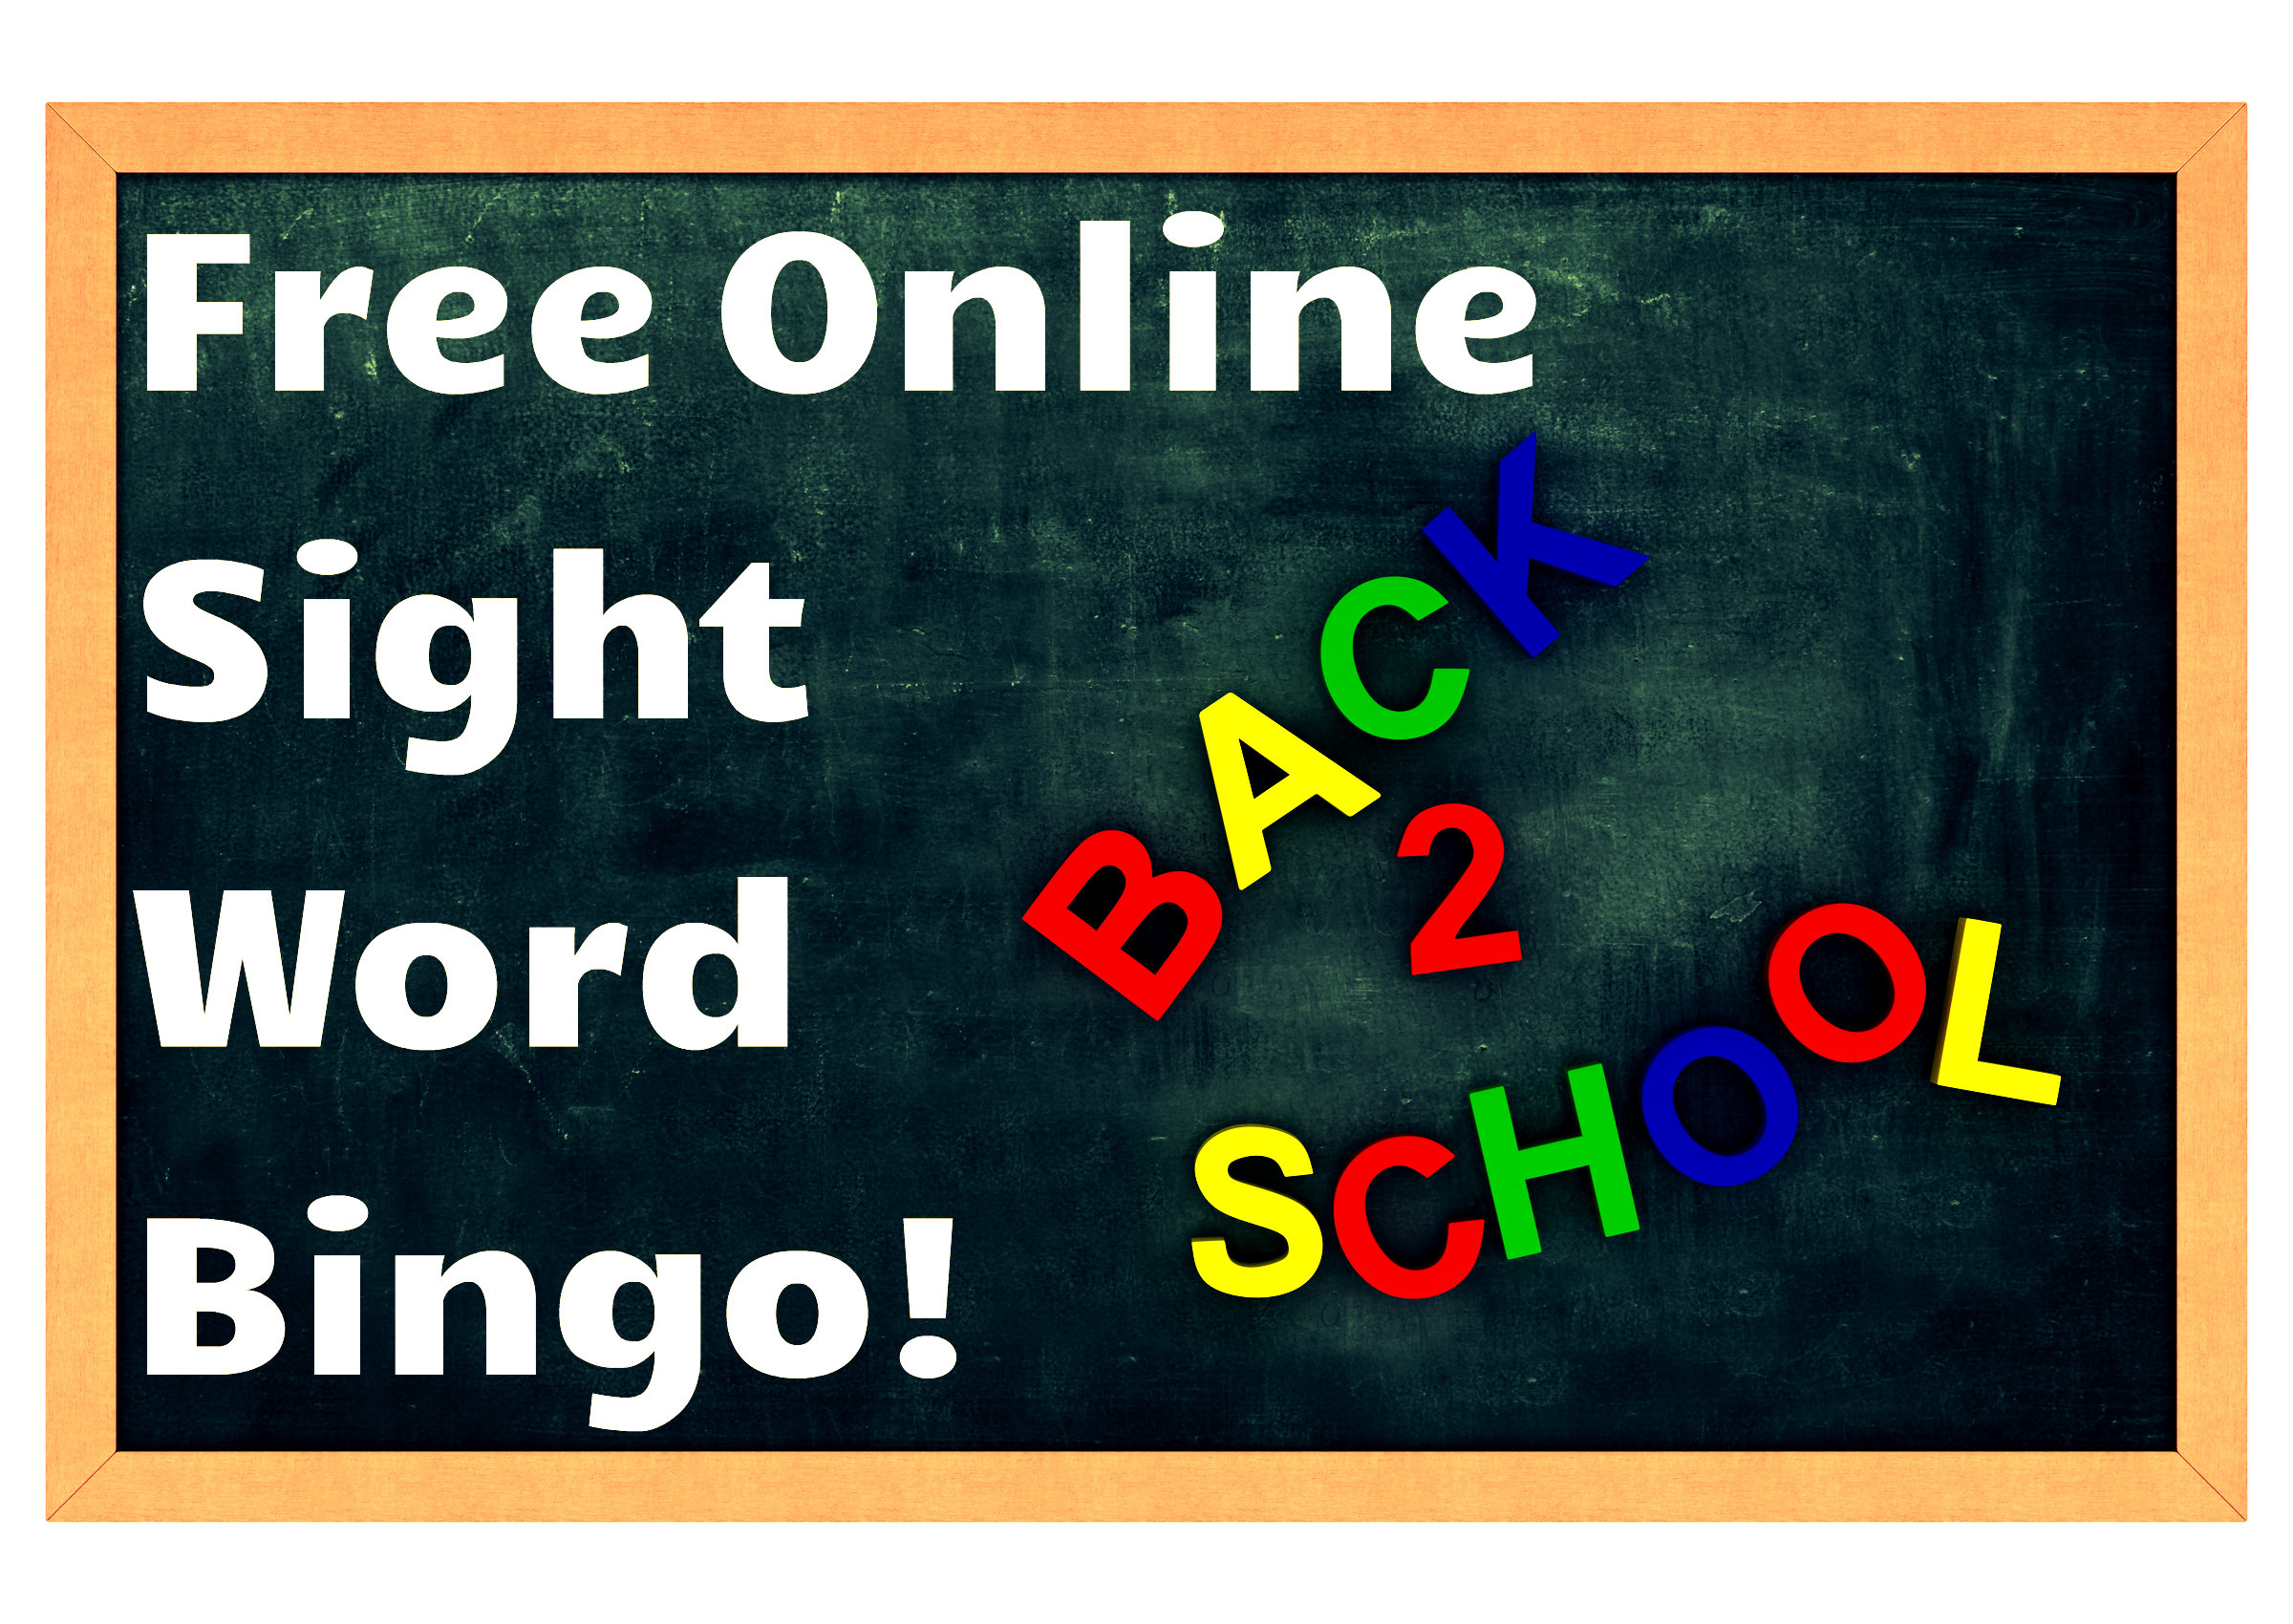 Sight Word Sight Activities  Free   Online activities Readyteacher word Bingo  online Word   sight